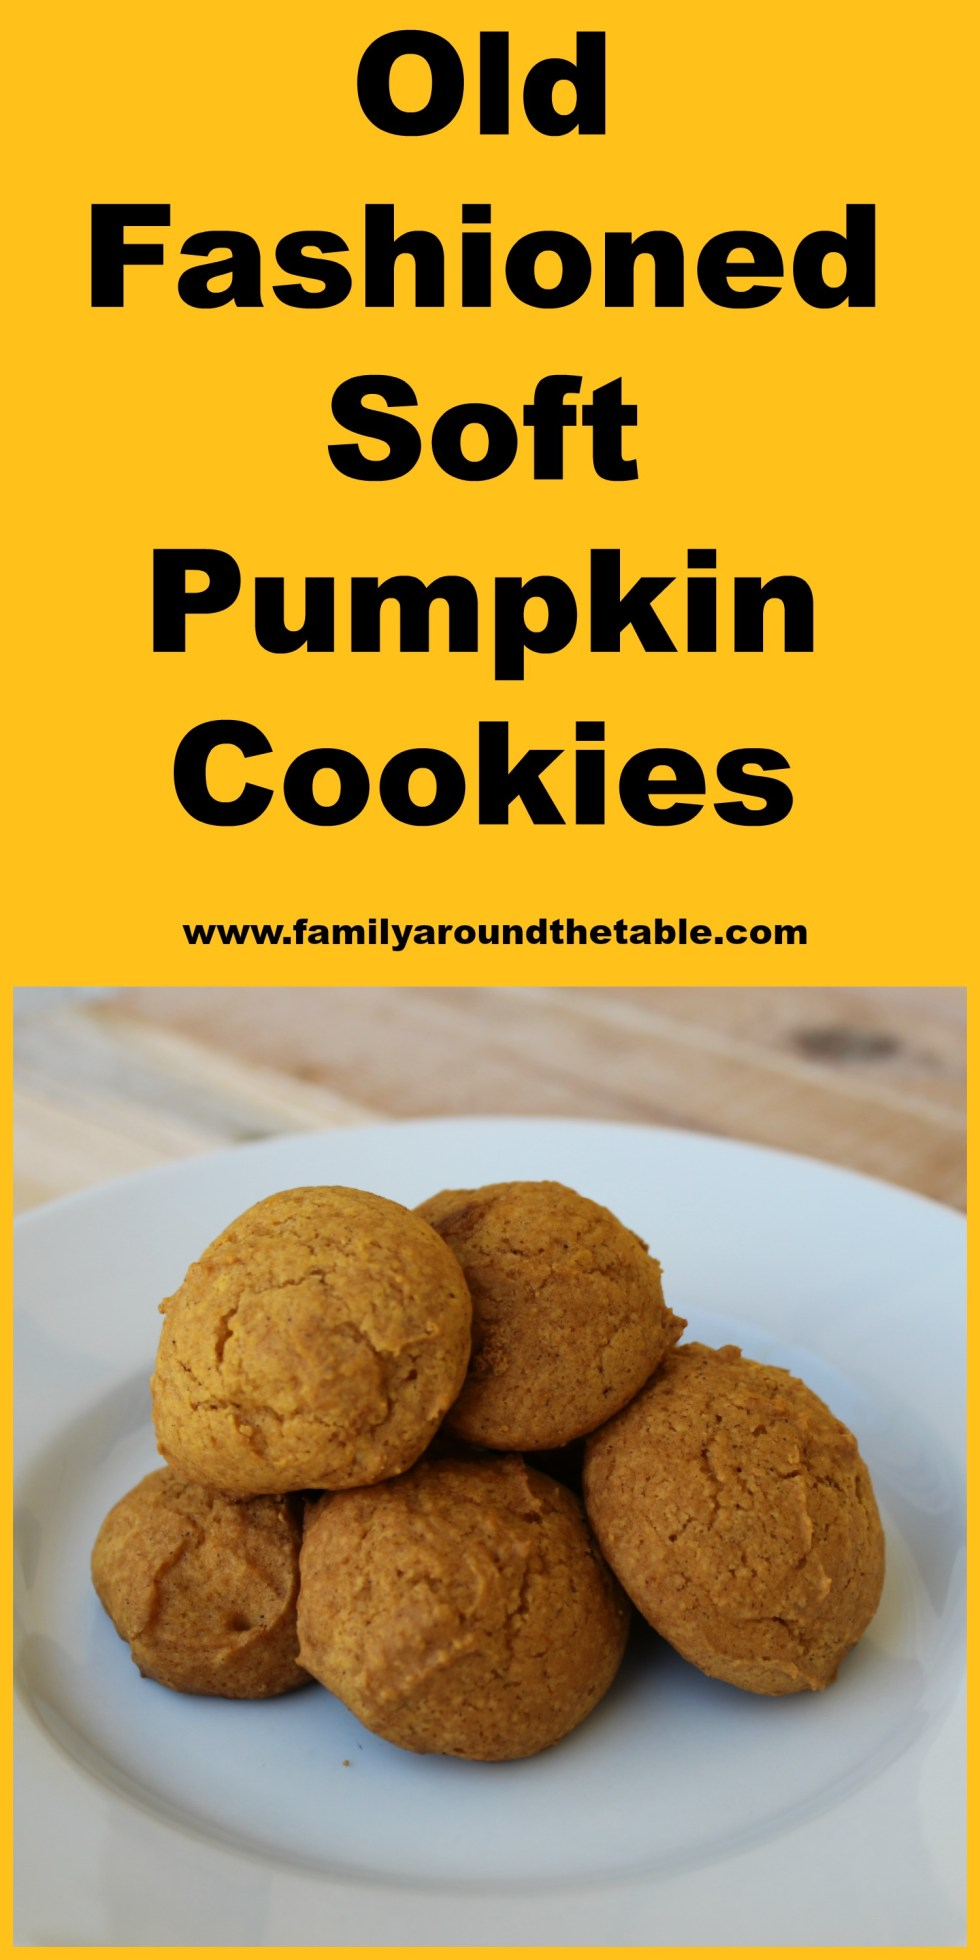 Old Fashioned Soft Pumpkin Cookies